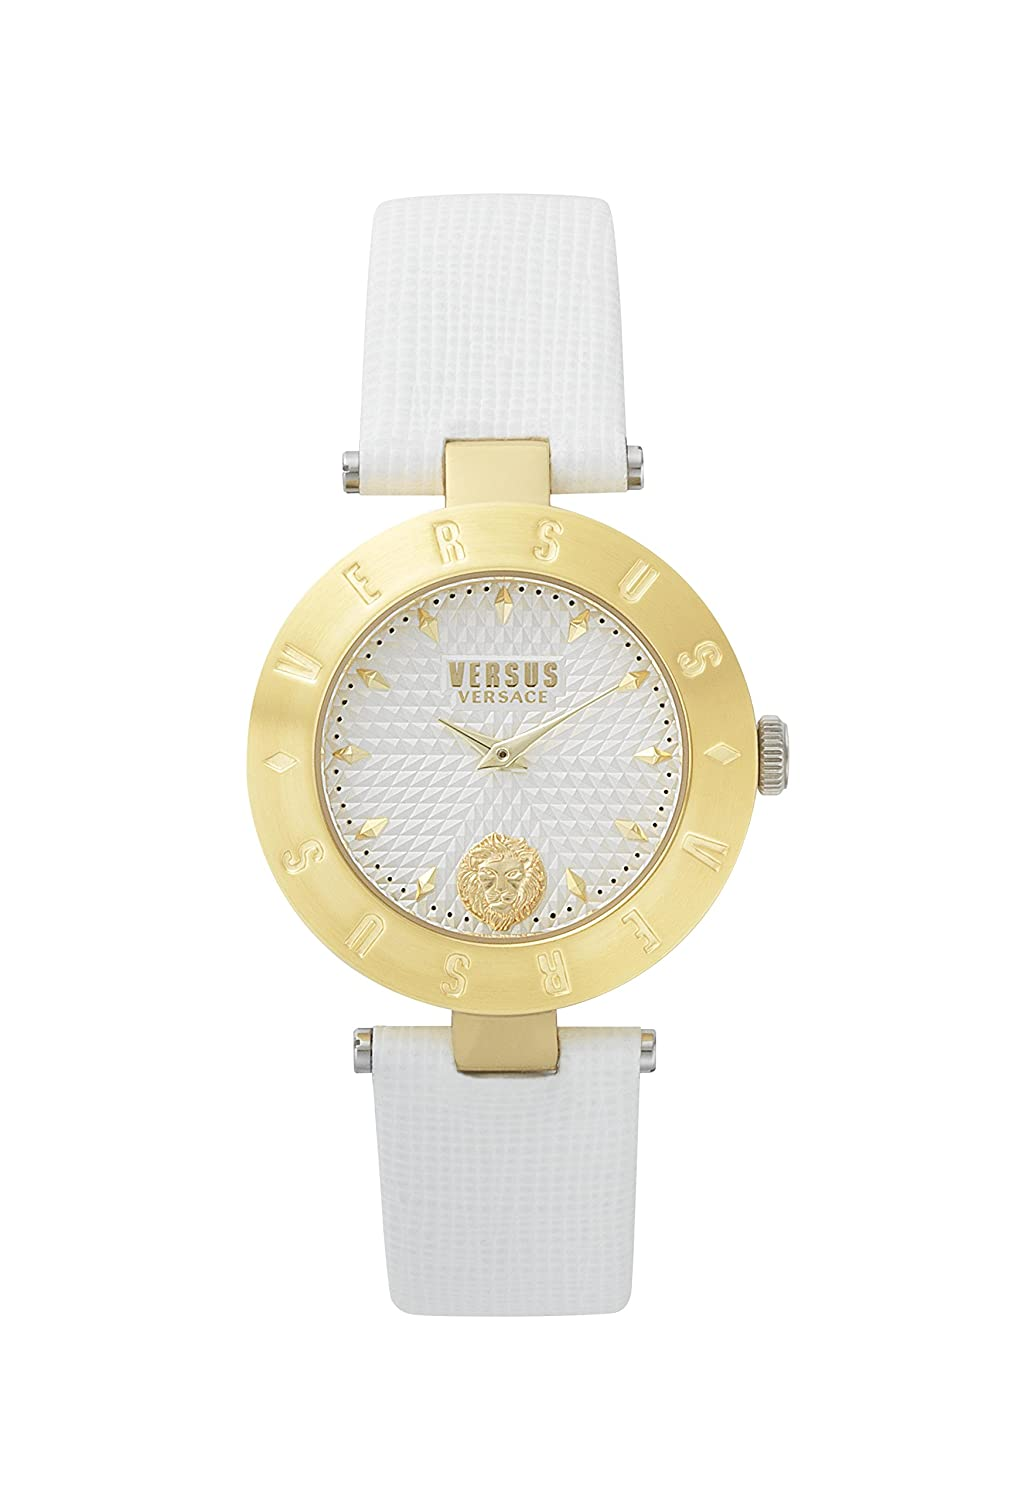 Amazon.com: Versus by Versace Womens New Logo Stainless Steel Quartz Watch with Leather Calfskin Strap, White, 18 (Model: S77030017: Watches